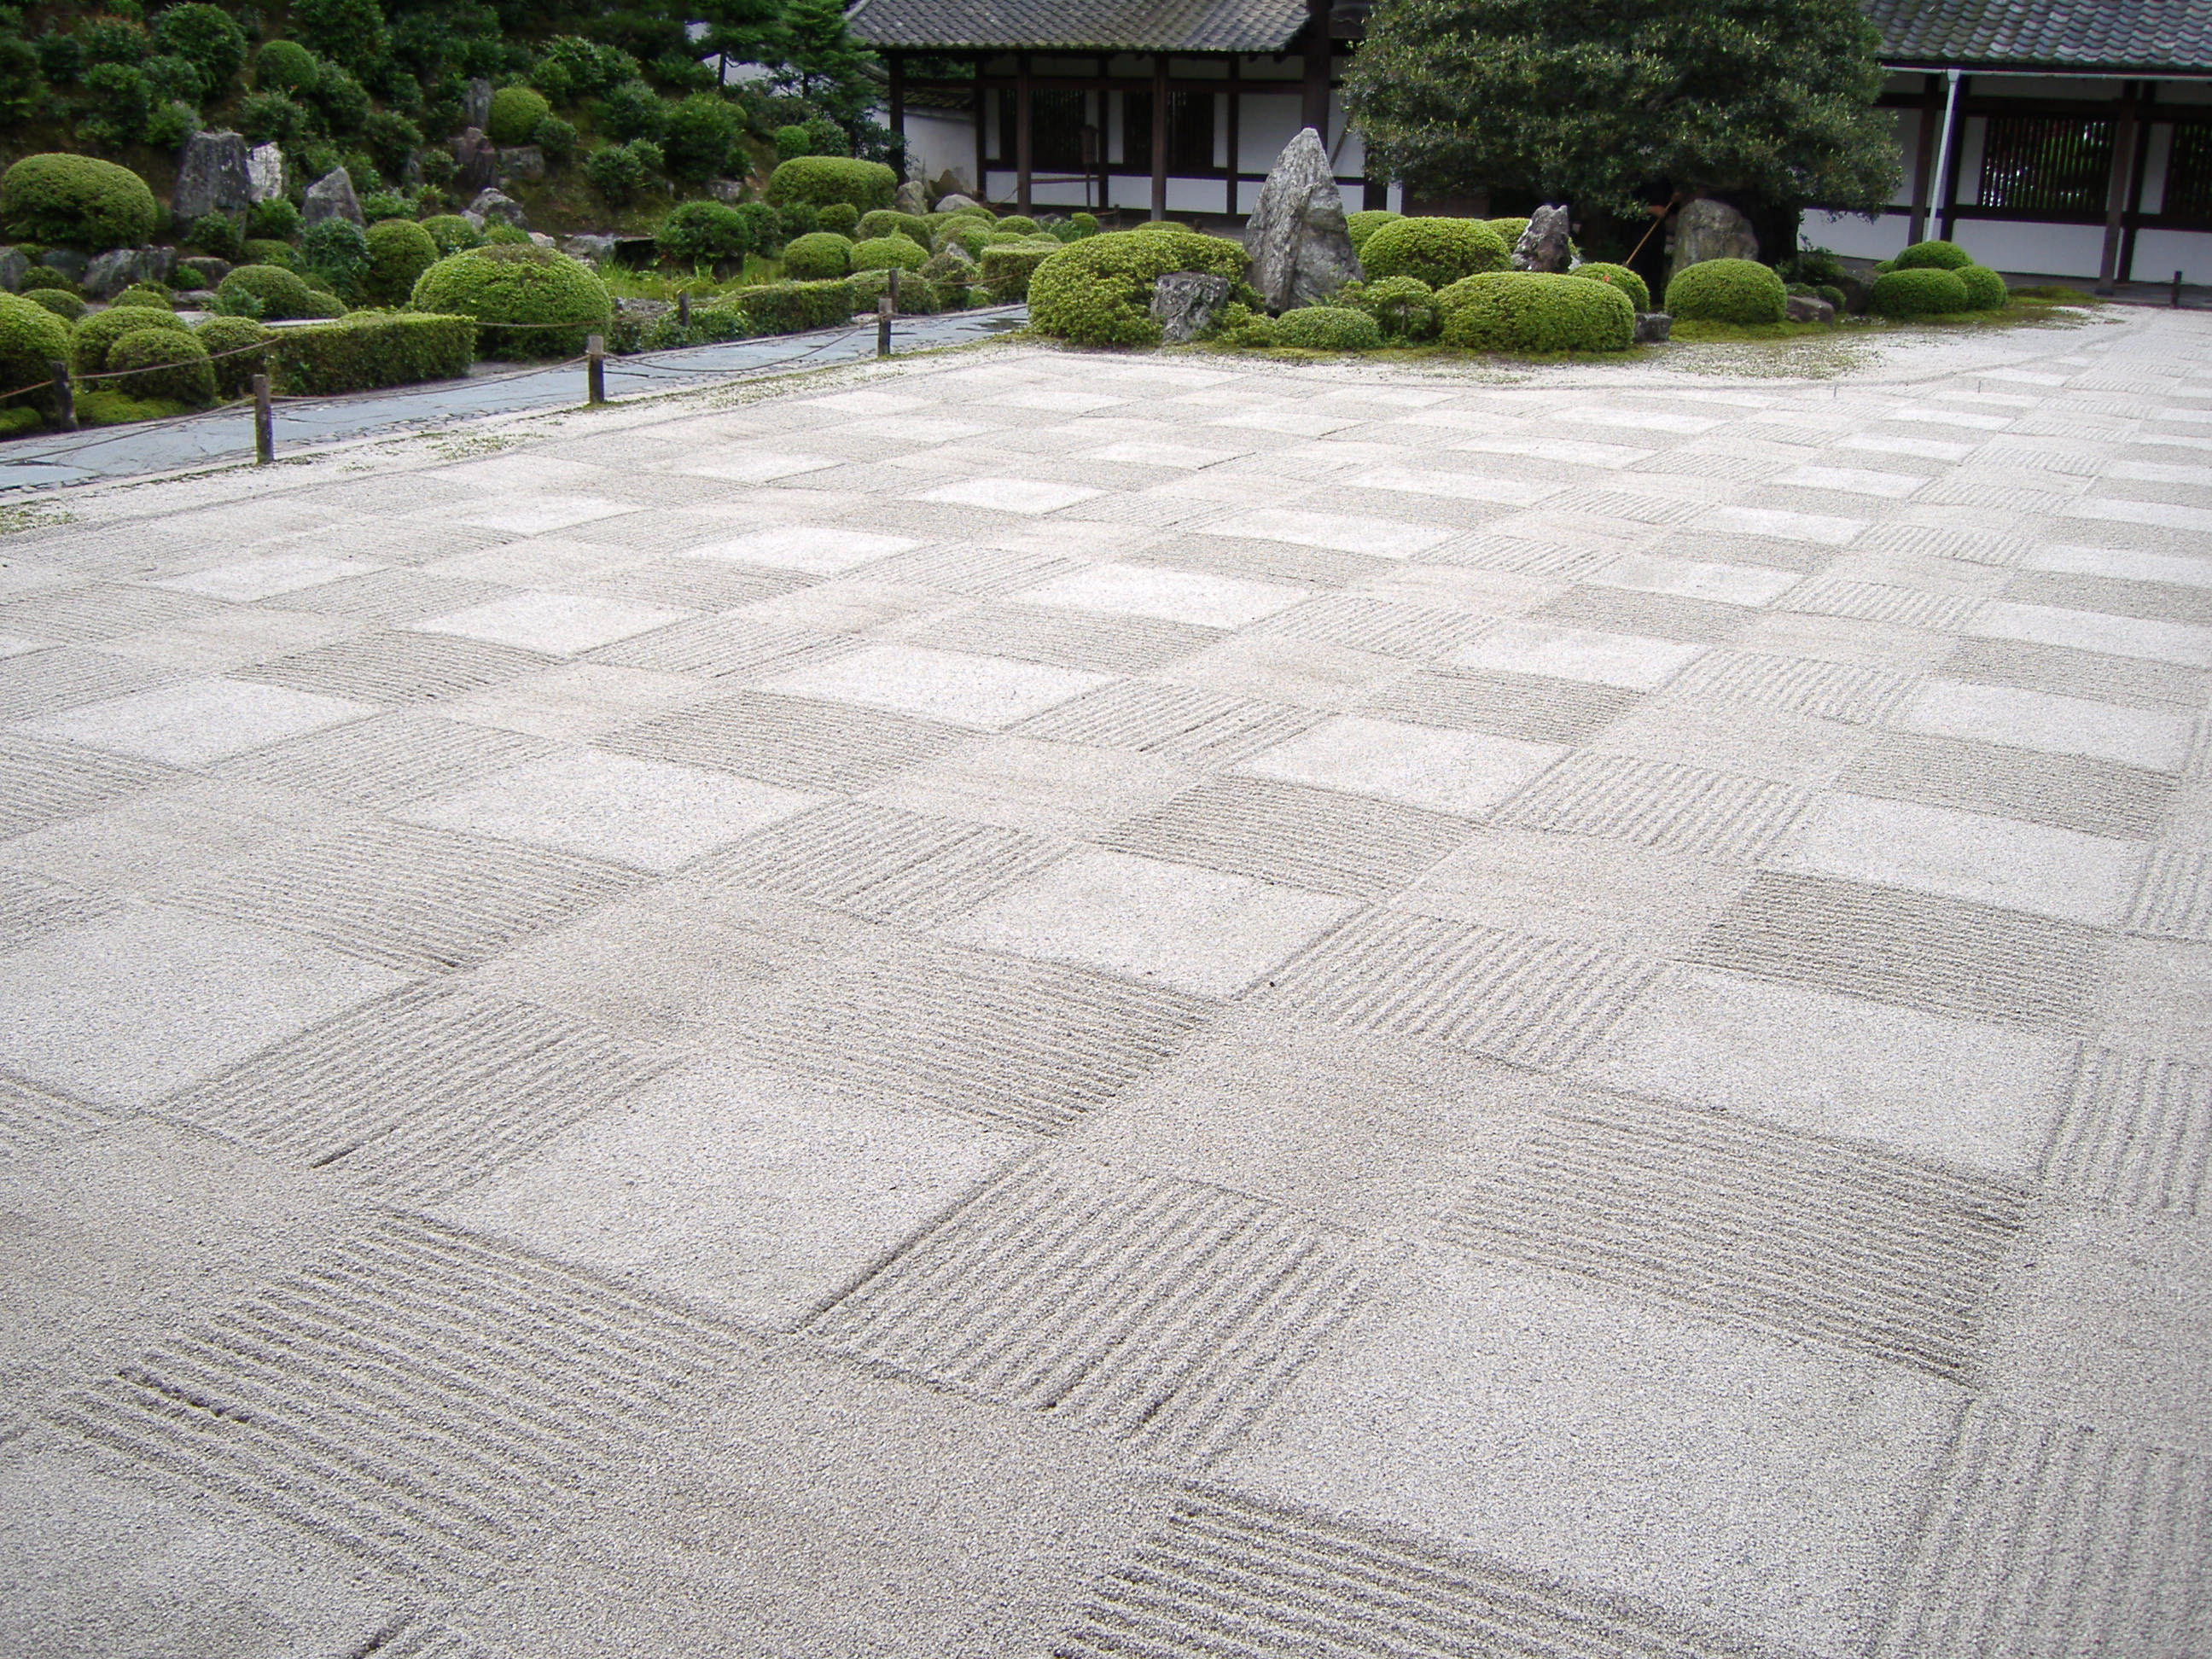 rock garden sand arranged in checkerboard